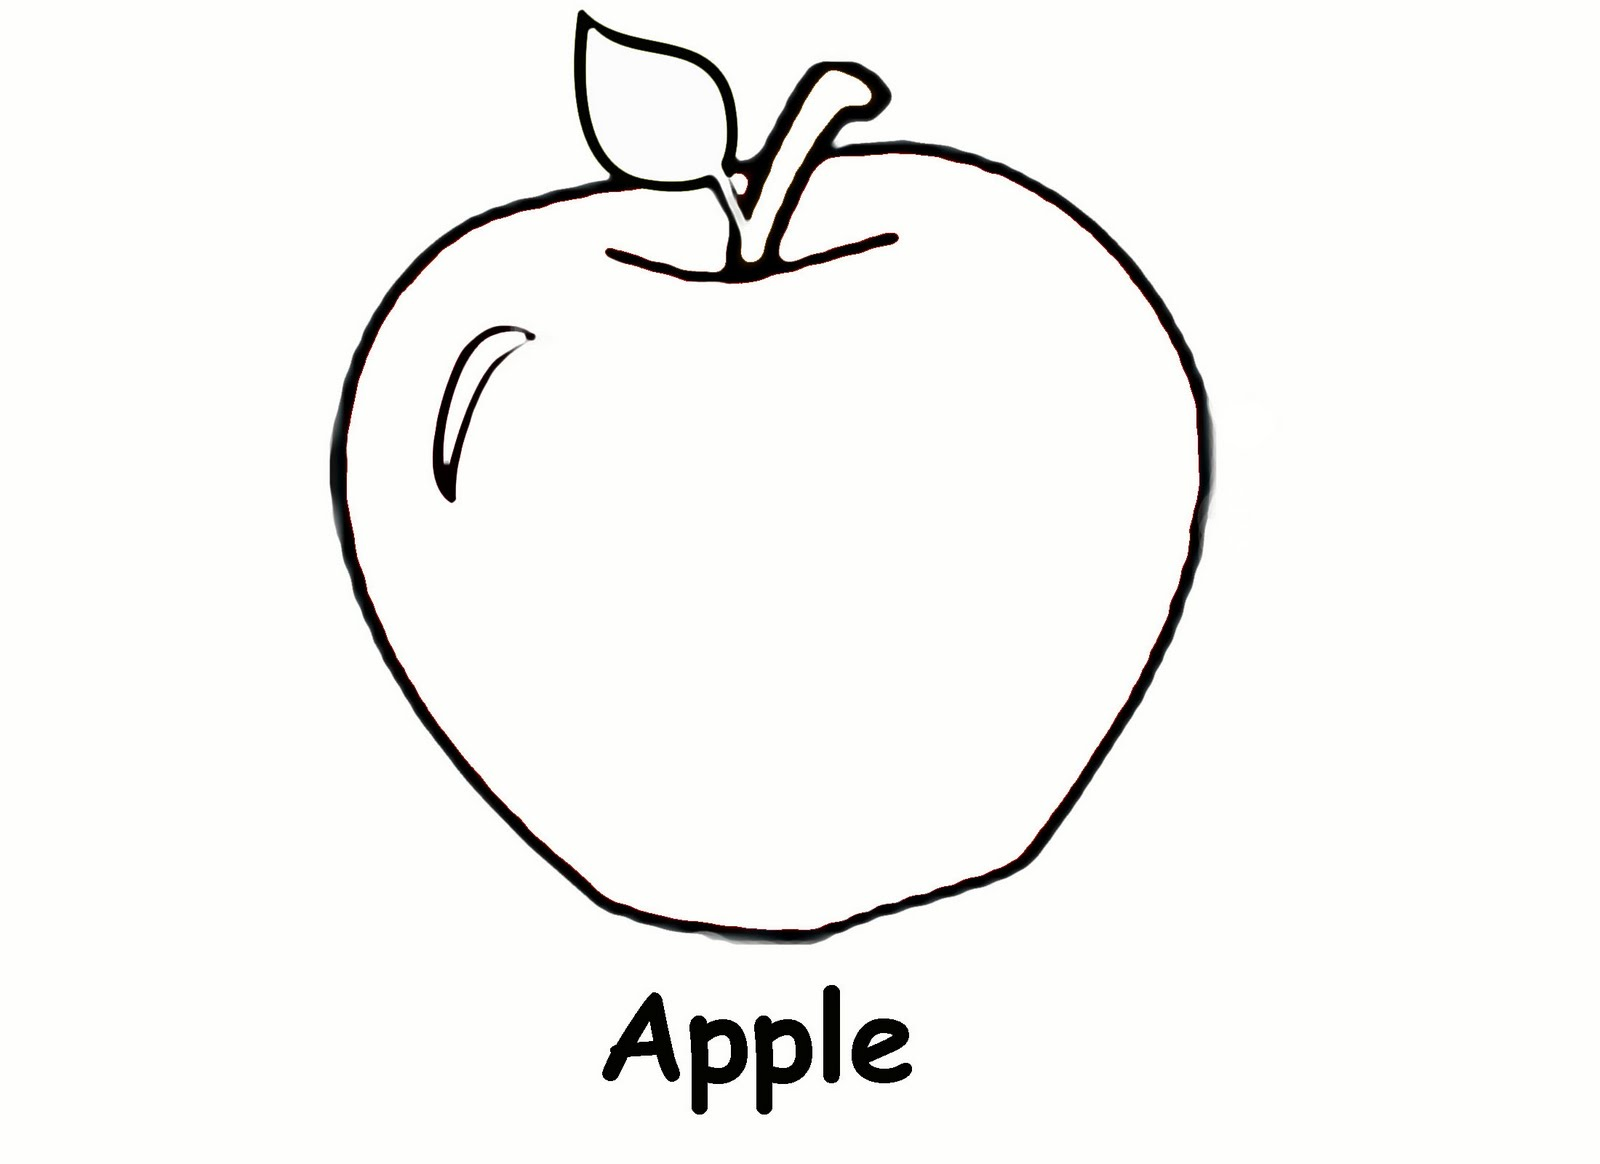 Free Coloring Pages Of An Apple : Sidther free printable preschool level coloring pages